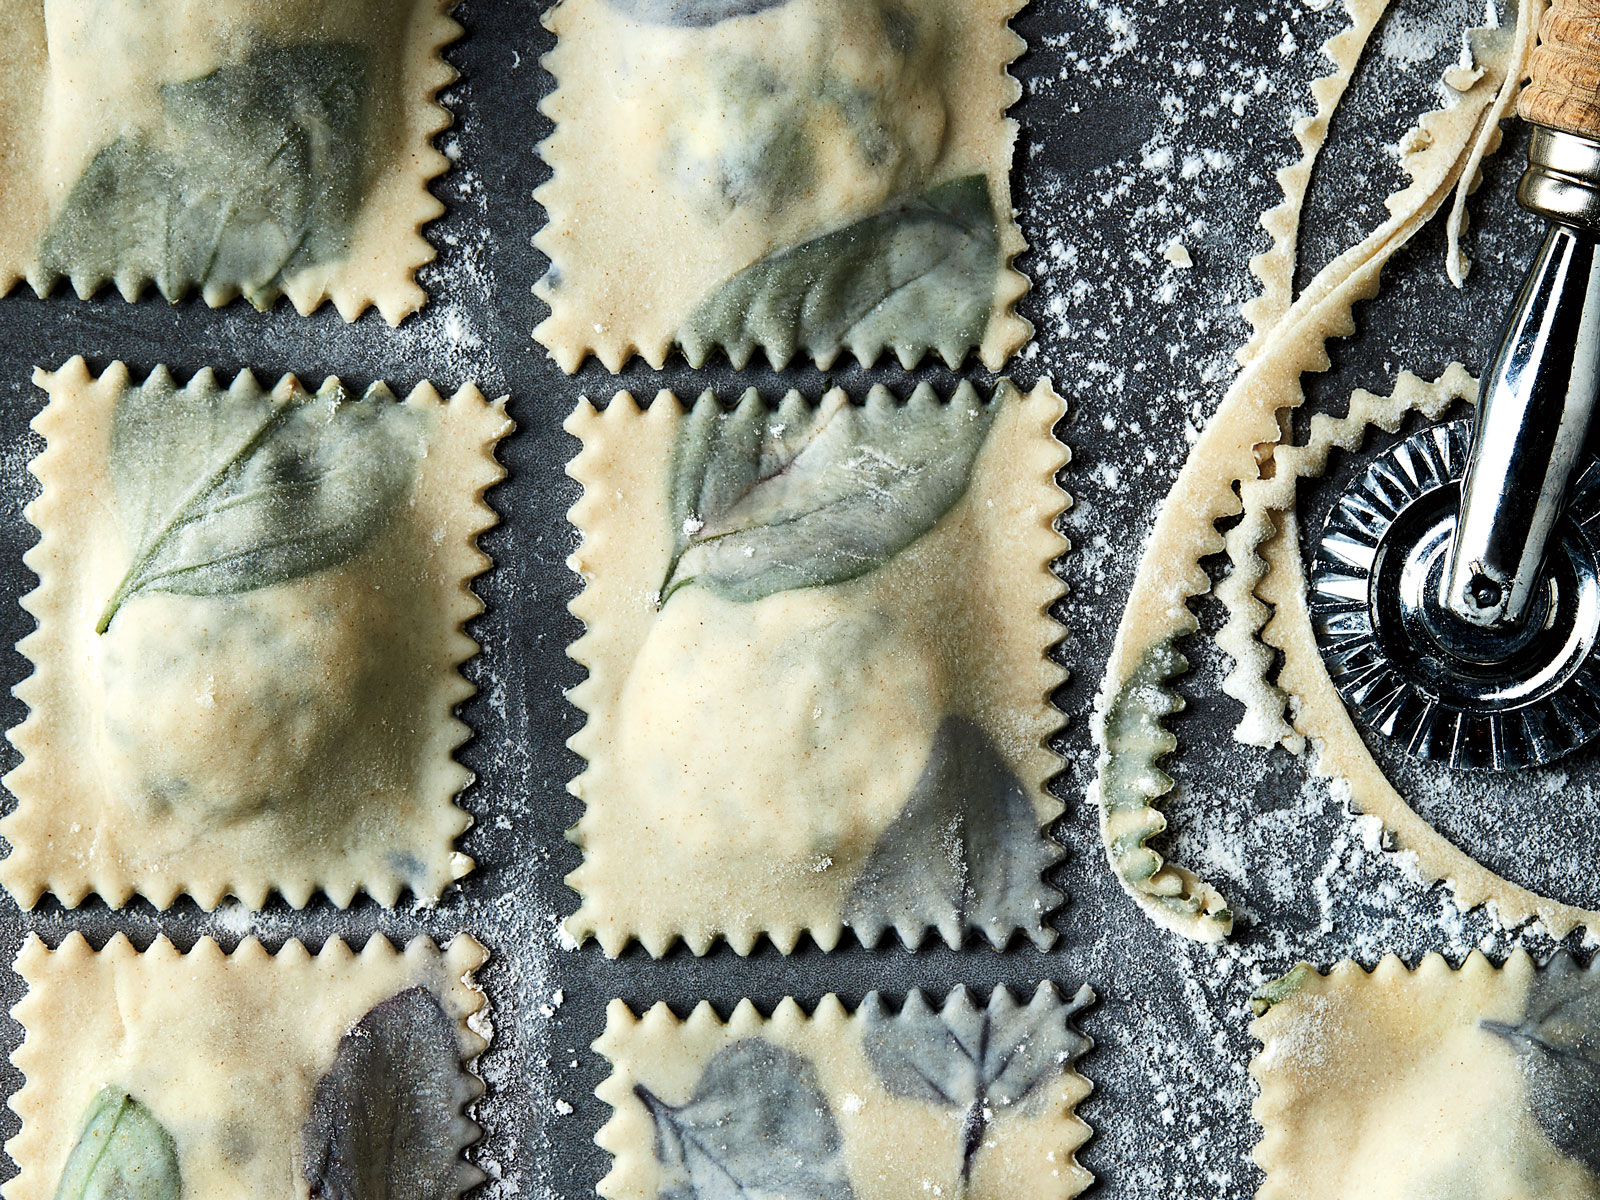 Basil Three-Cheese Ravioli with No-Cook Fresh Tomato Sauce